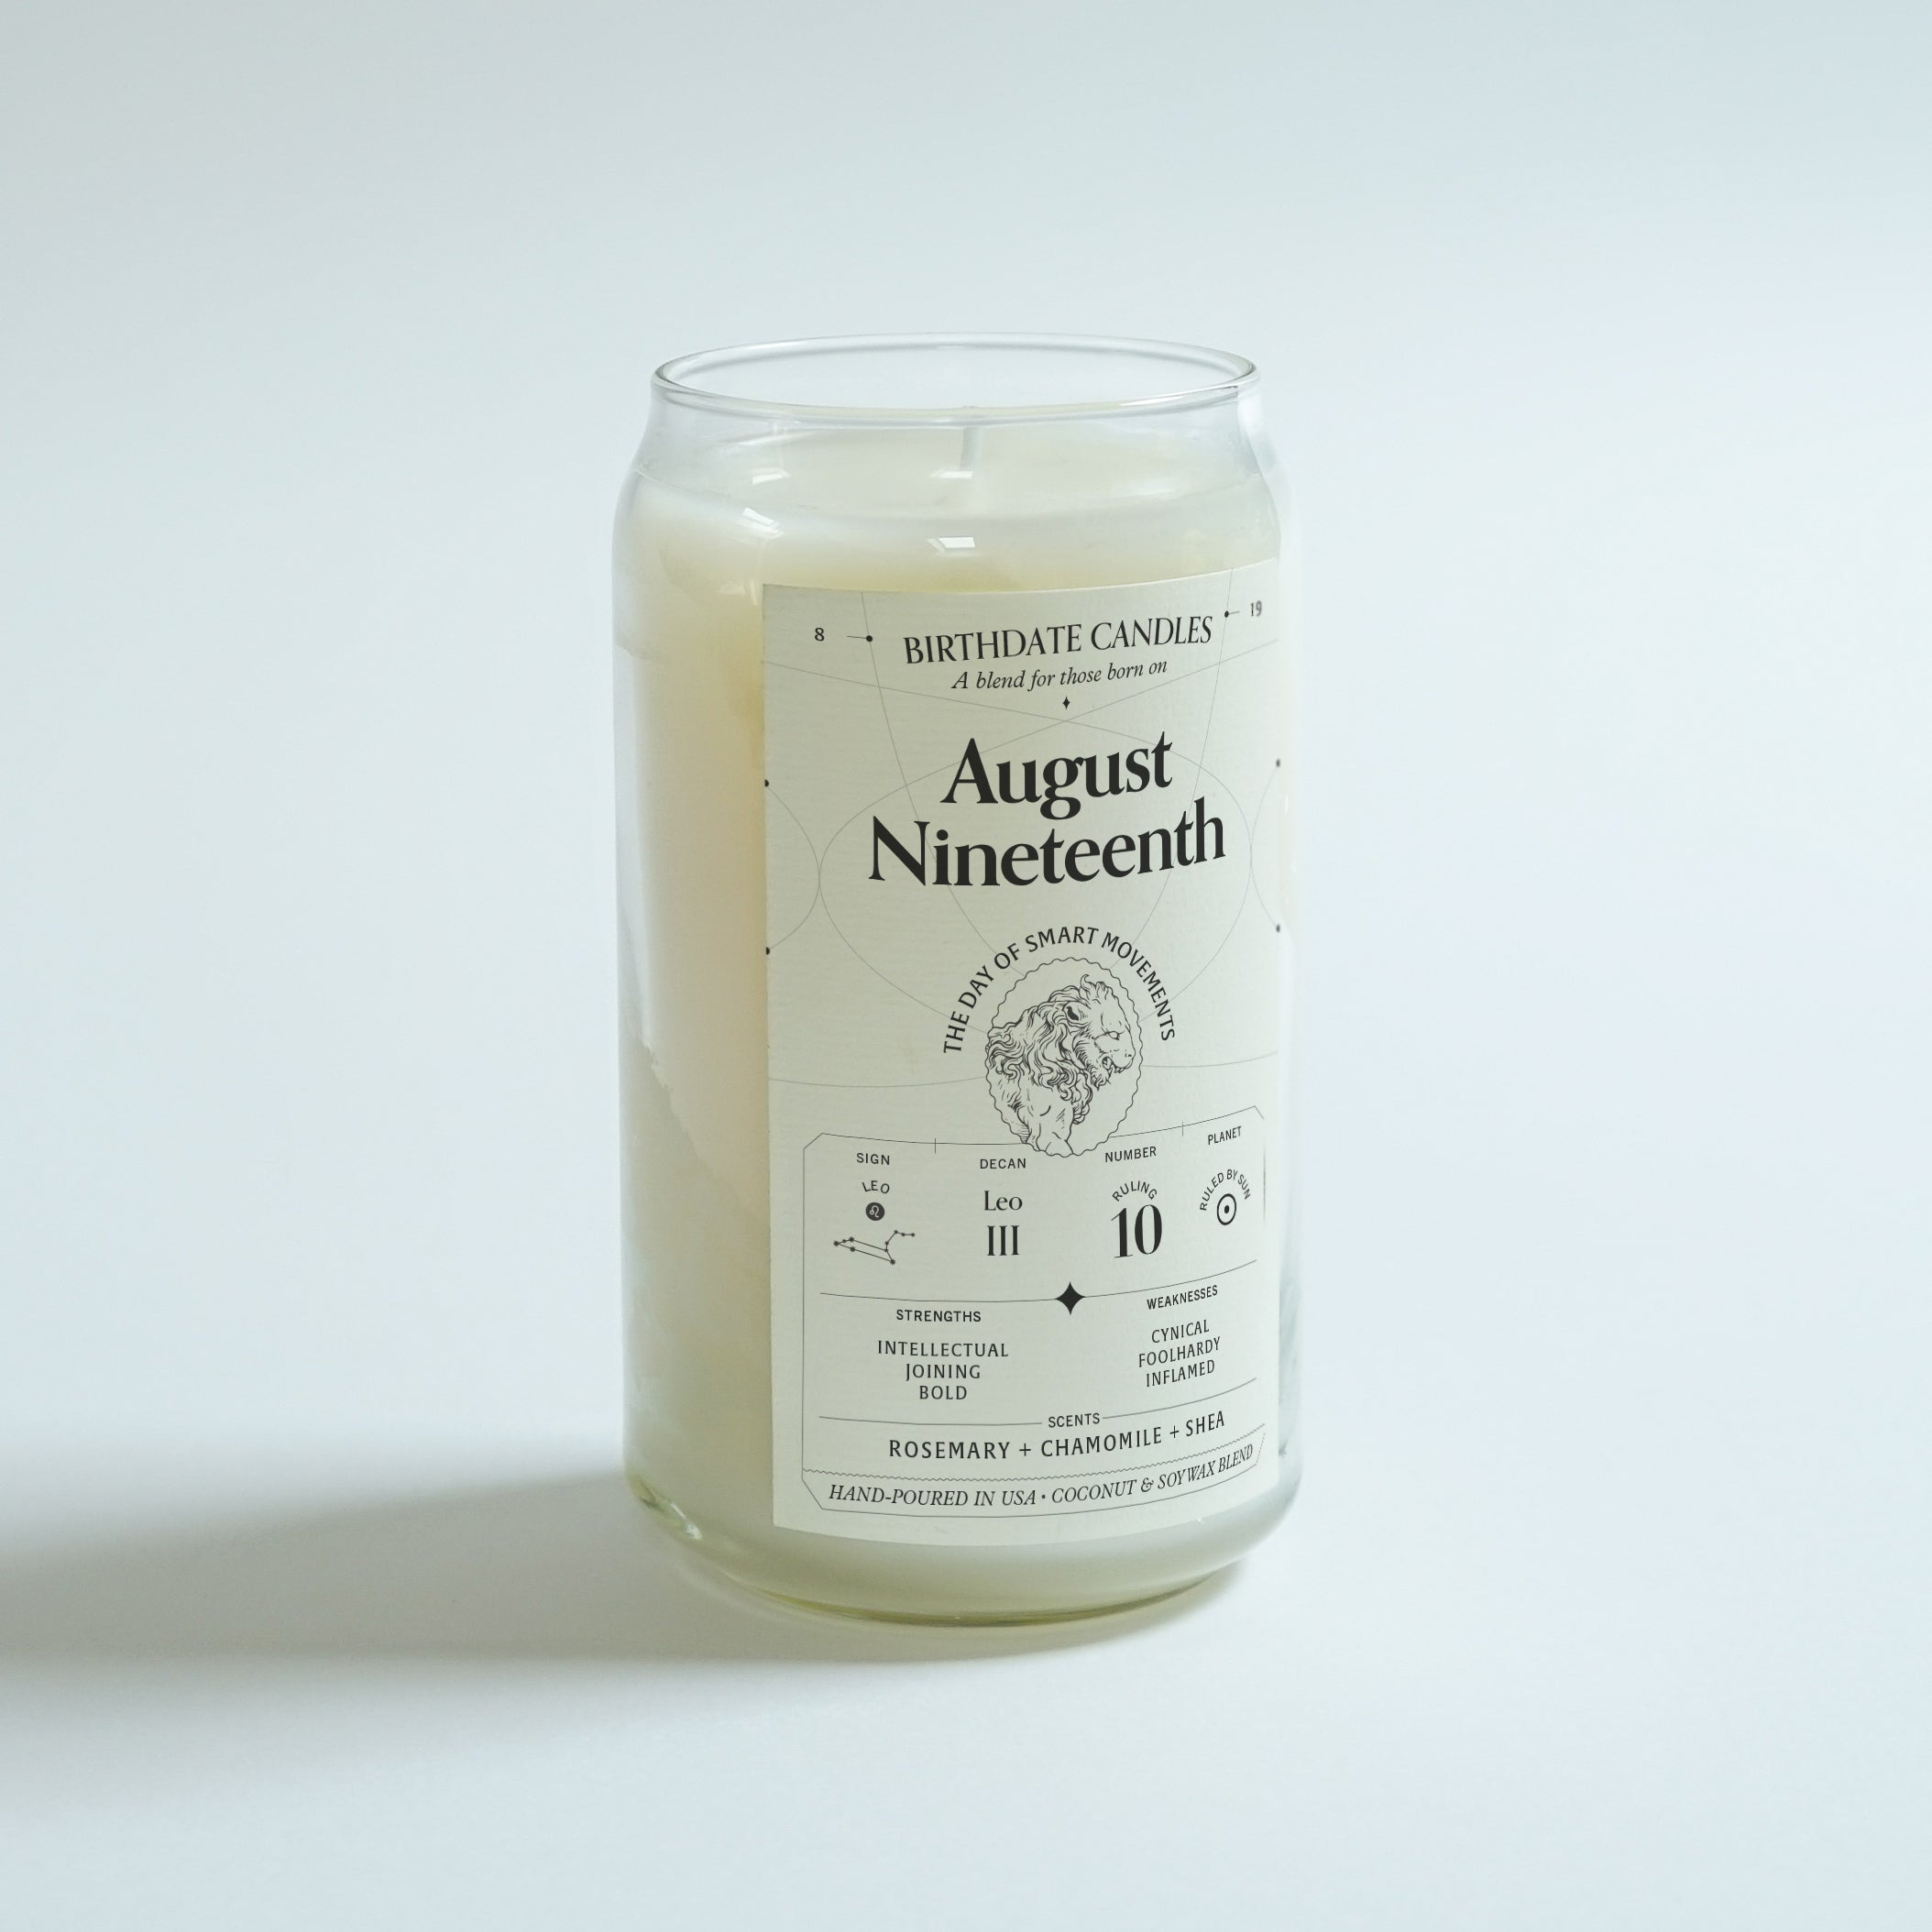 The August Nineteenth Candle